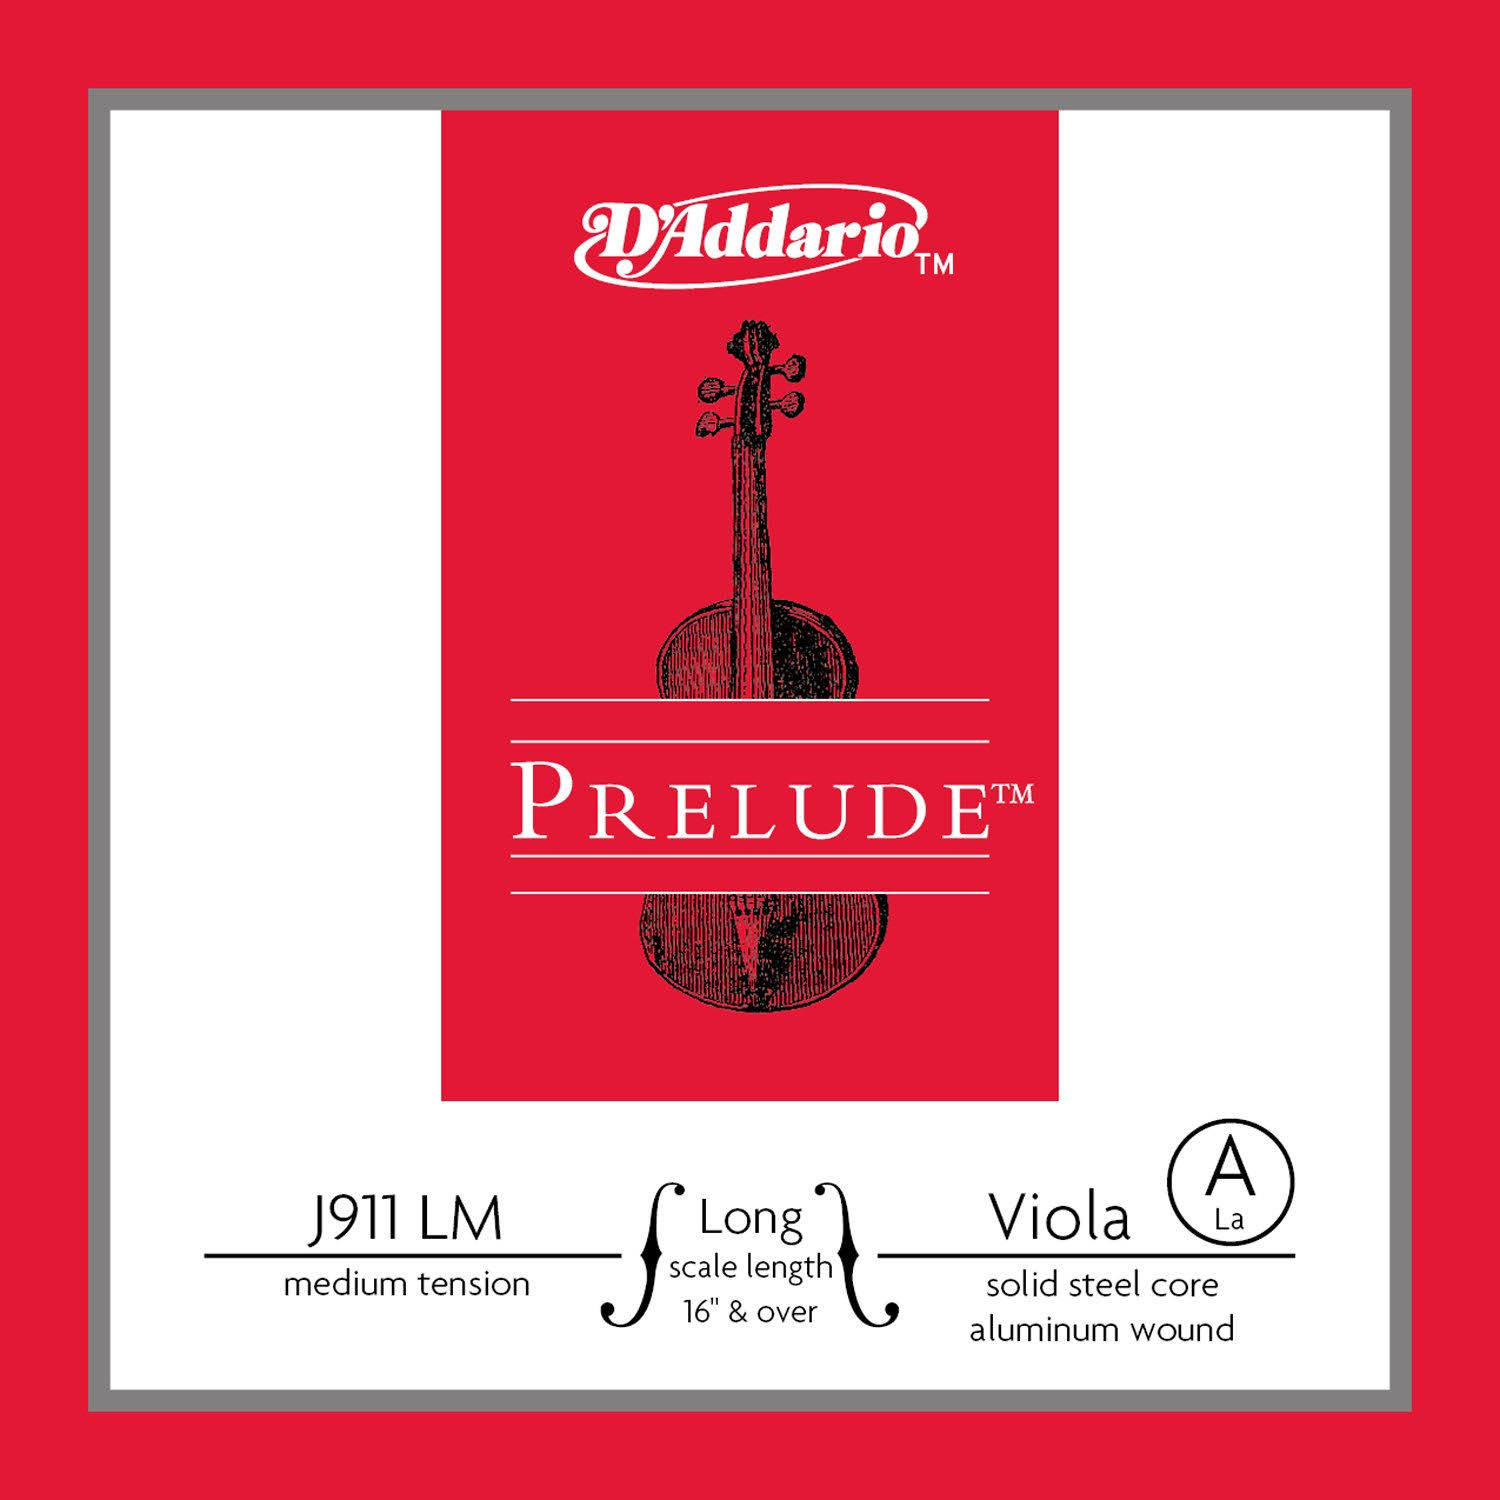 D'Addario Prelude Viola Single A String - 16 Long Scale, Medium Tension